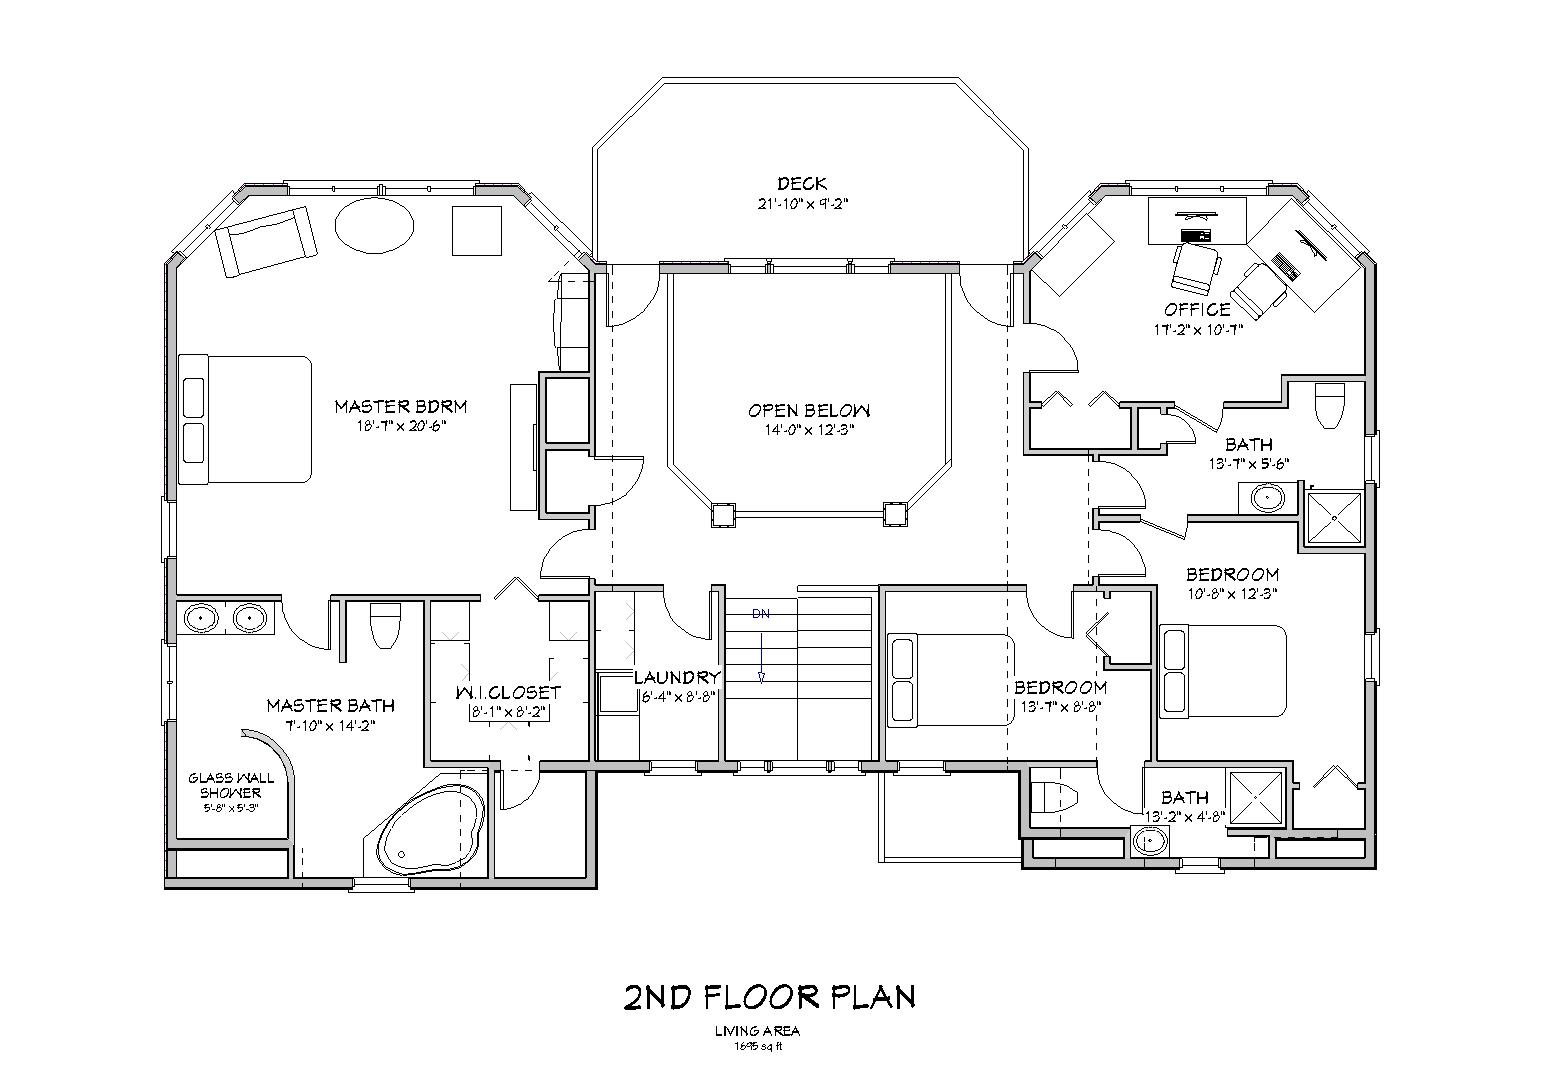 Beach House Plan 2nd Floor (Image 4 of 10)